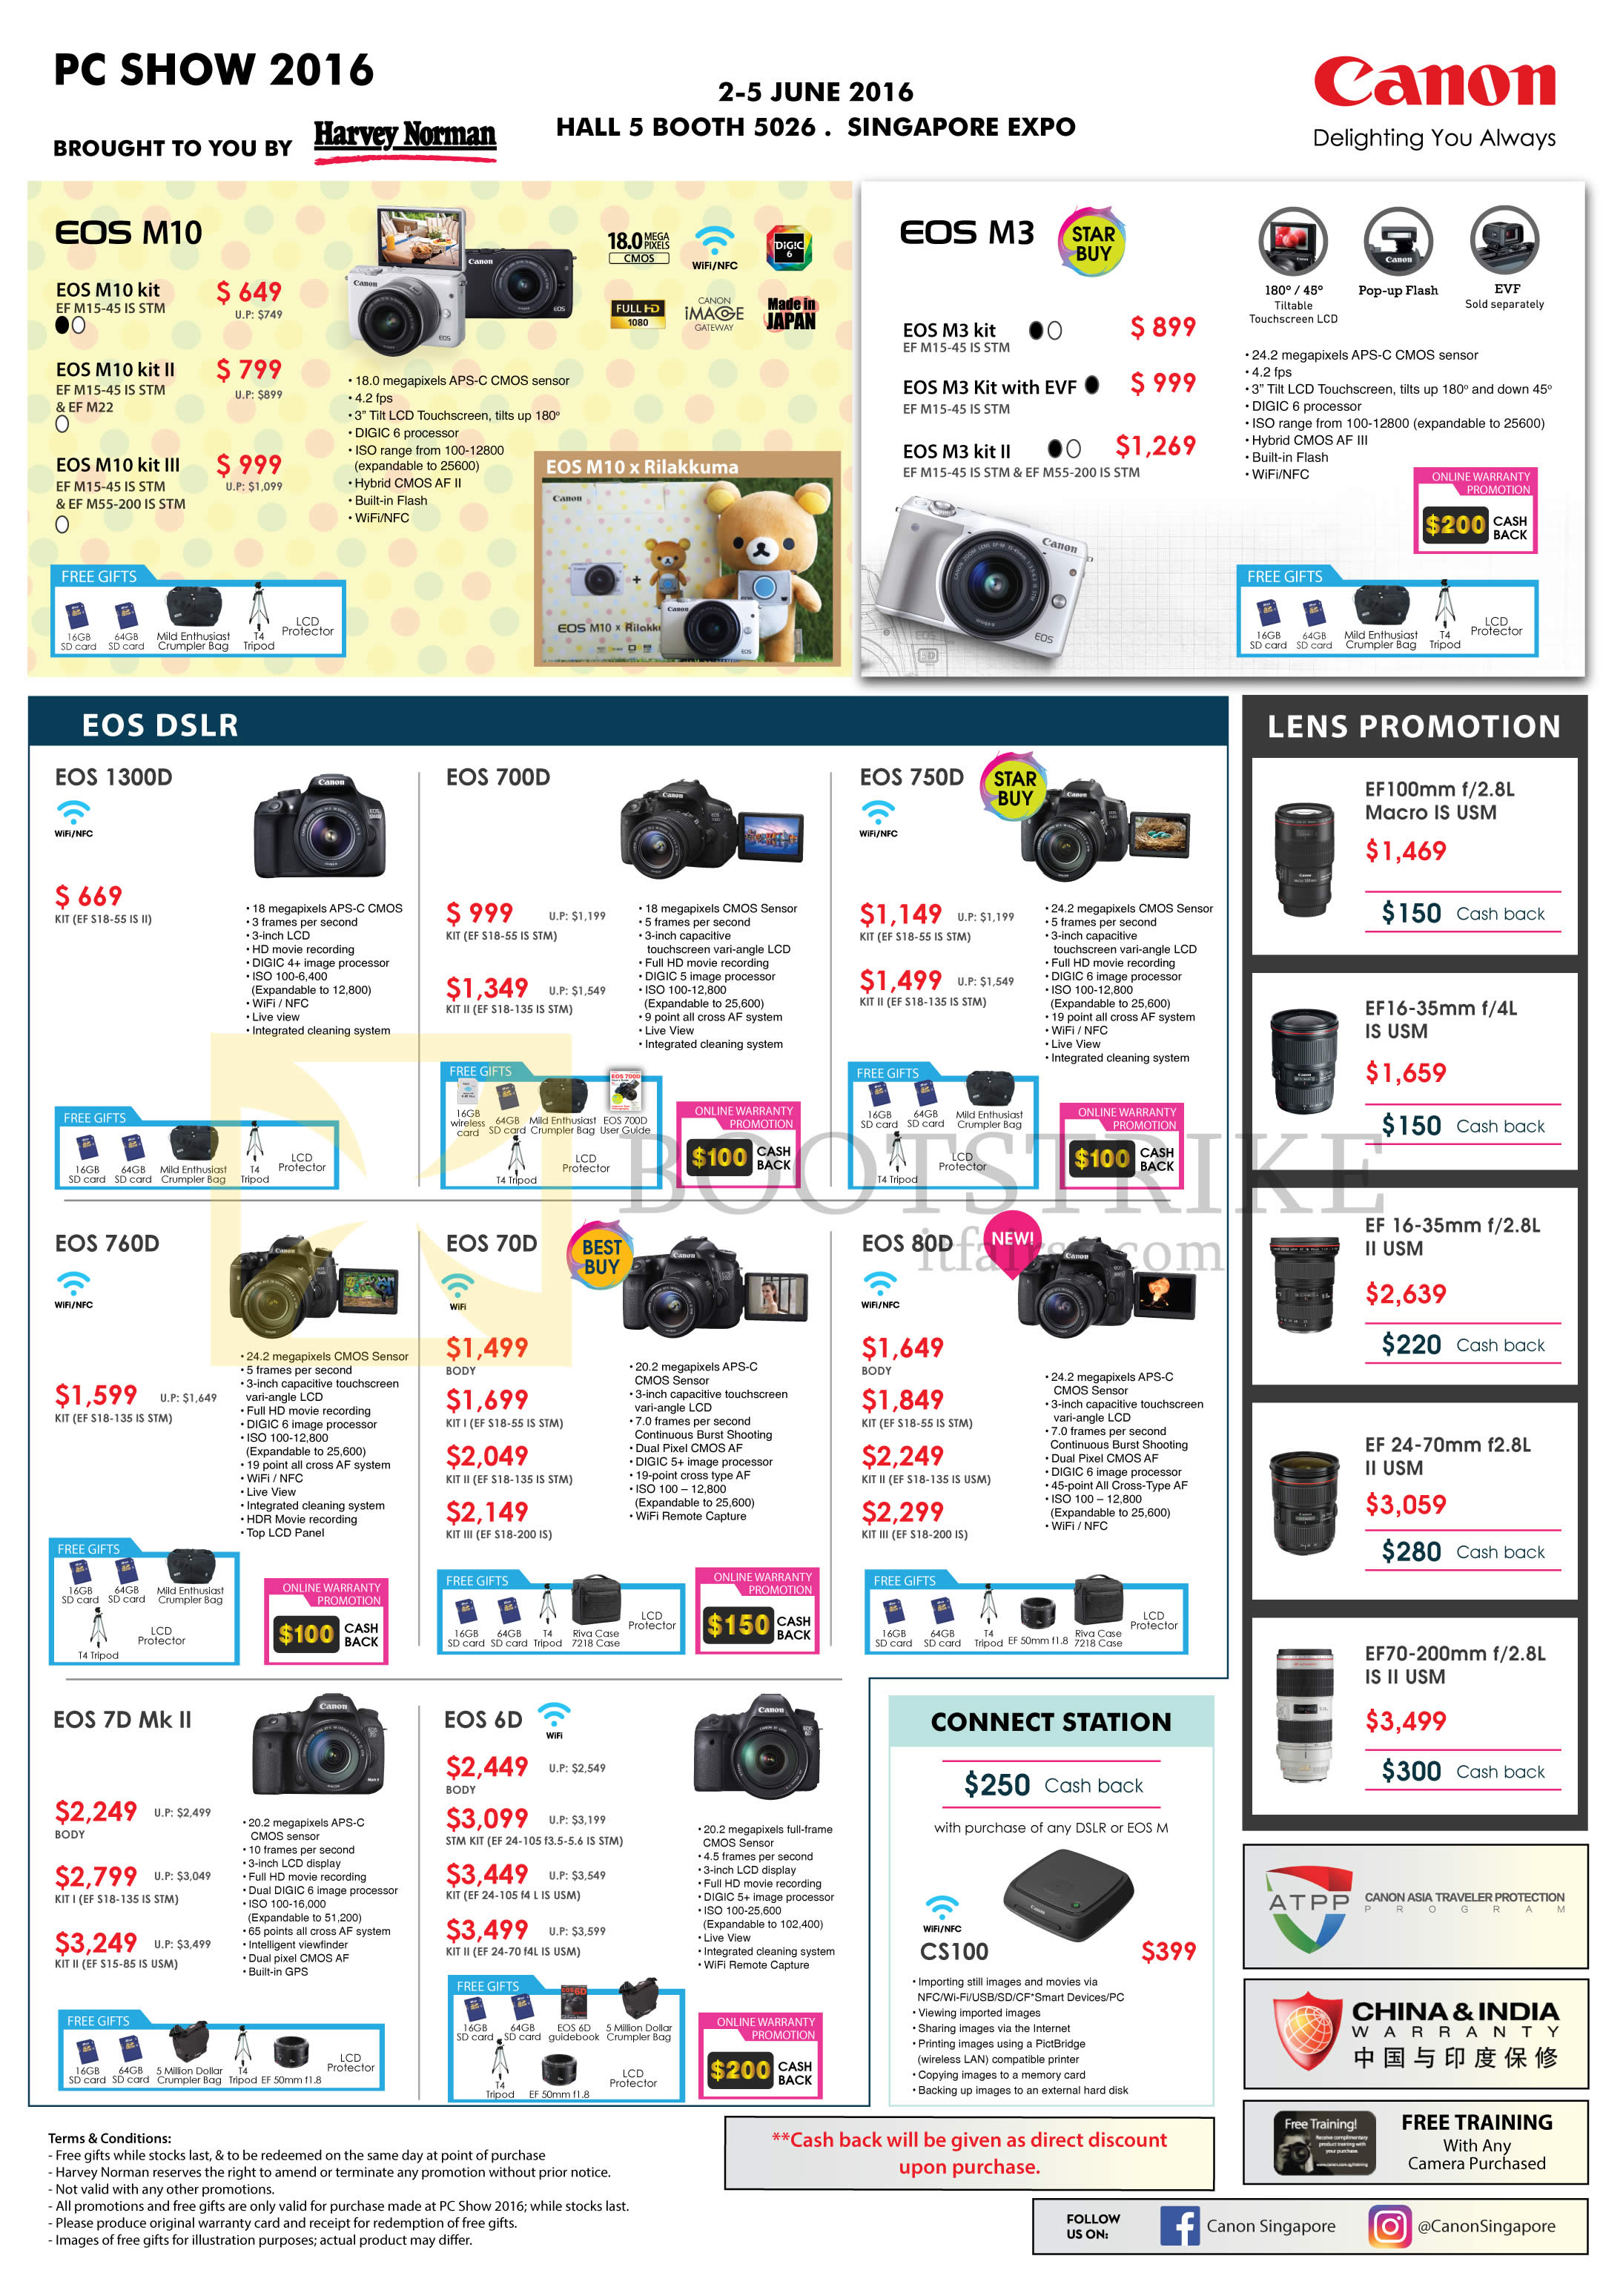 PC SHOW 2016 price list image brochure of Canon DSLR Digital Cameras, Connect Station, EOS M10, 1300D, 760D, 7D Mk II, 700D, 70D, 6D, 750D, 80D, CS100